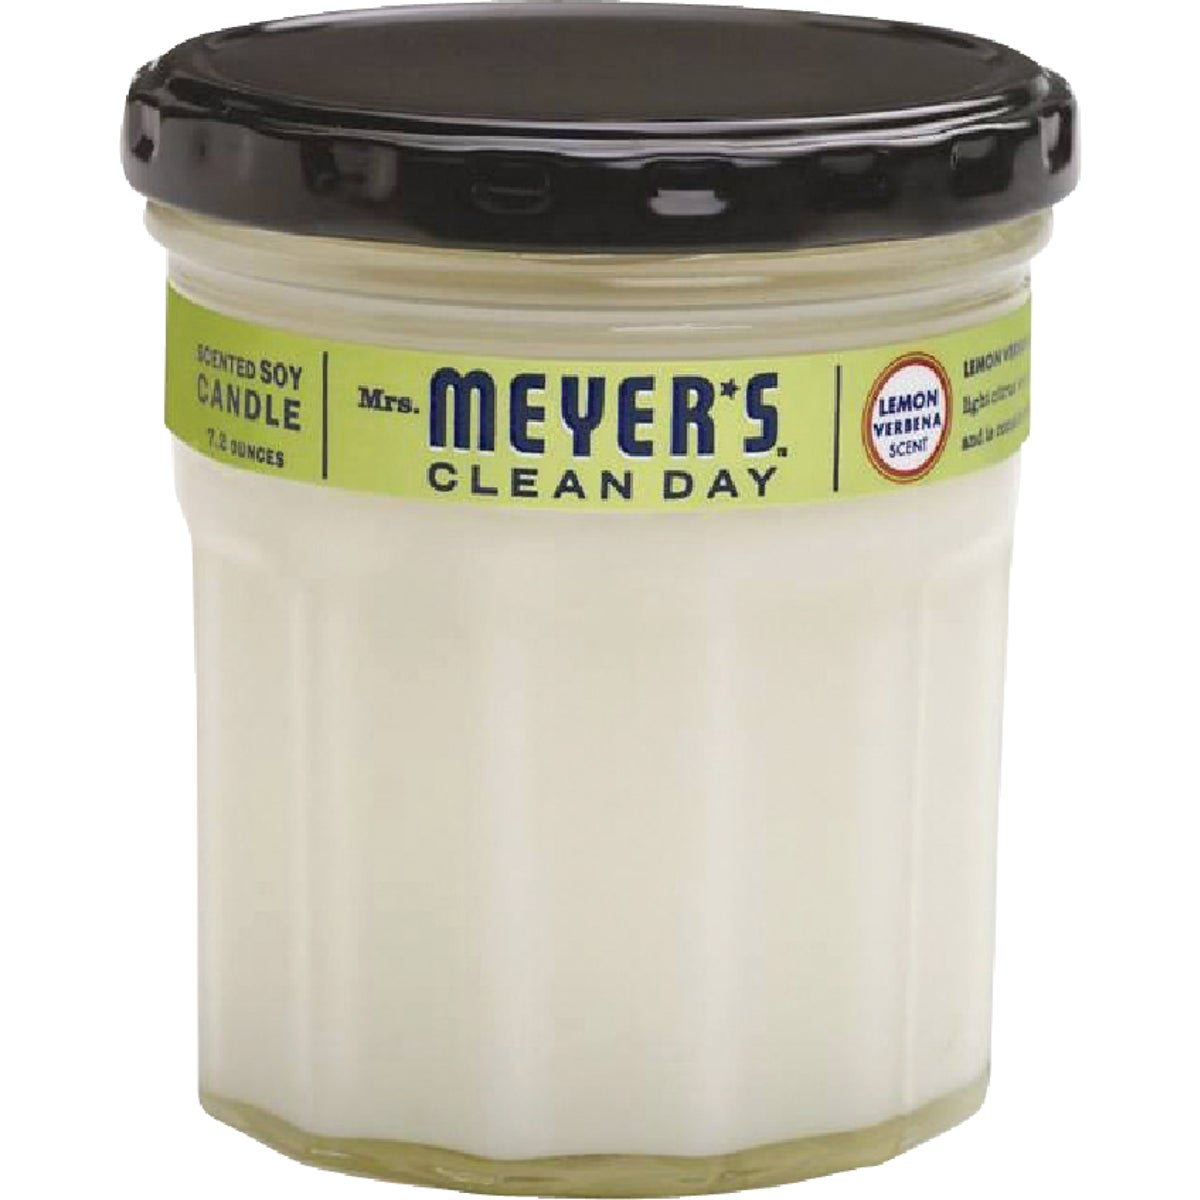 7.2OZ LEMON SOY CANDLE - 42116 by Mrs Meyers Clean Day